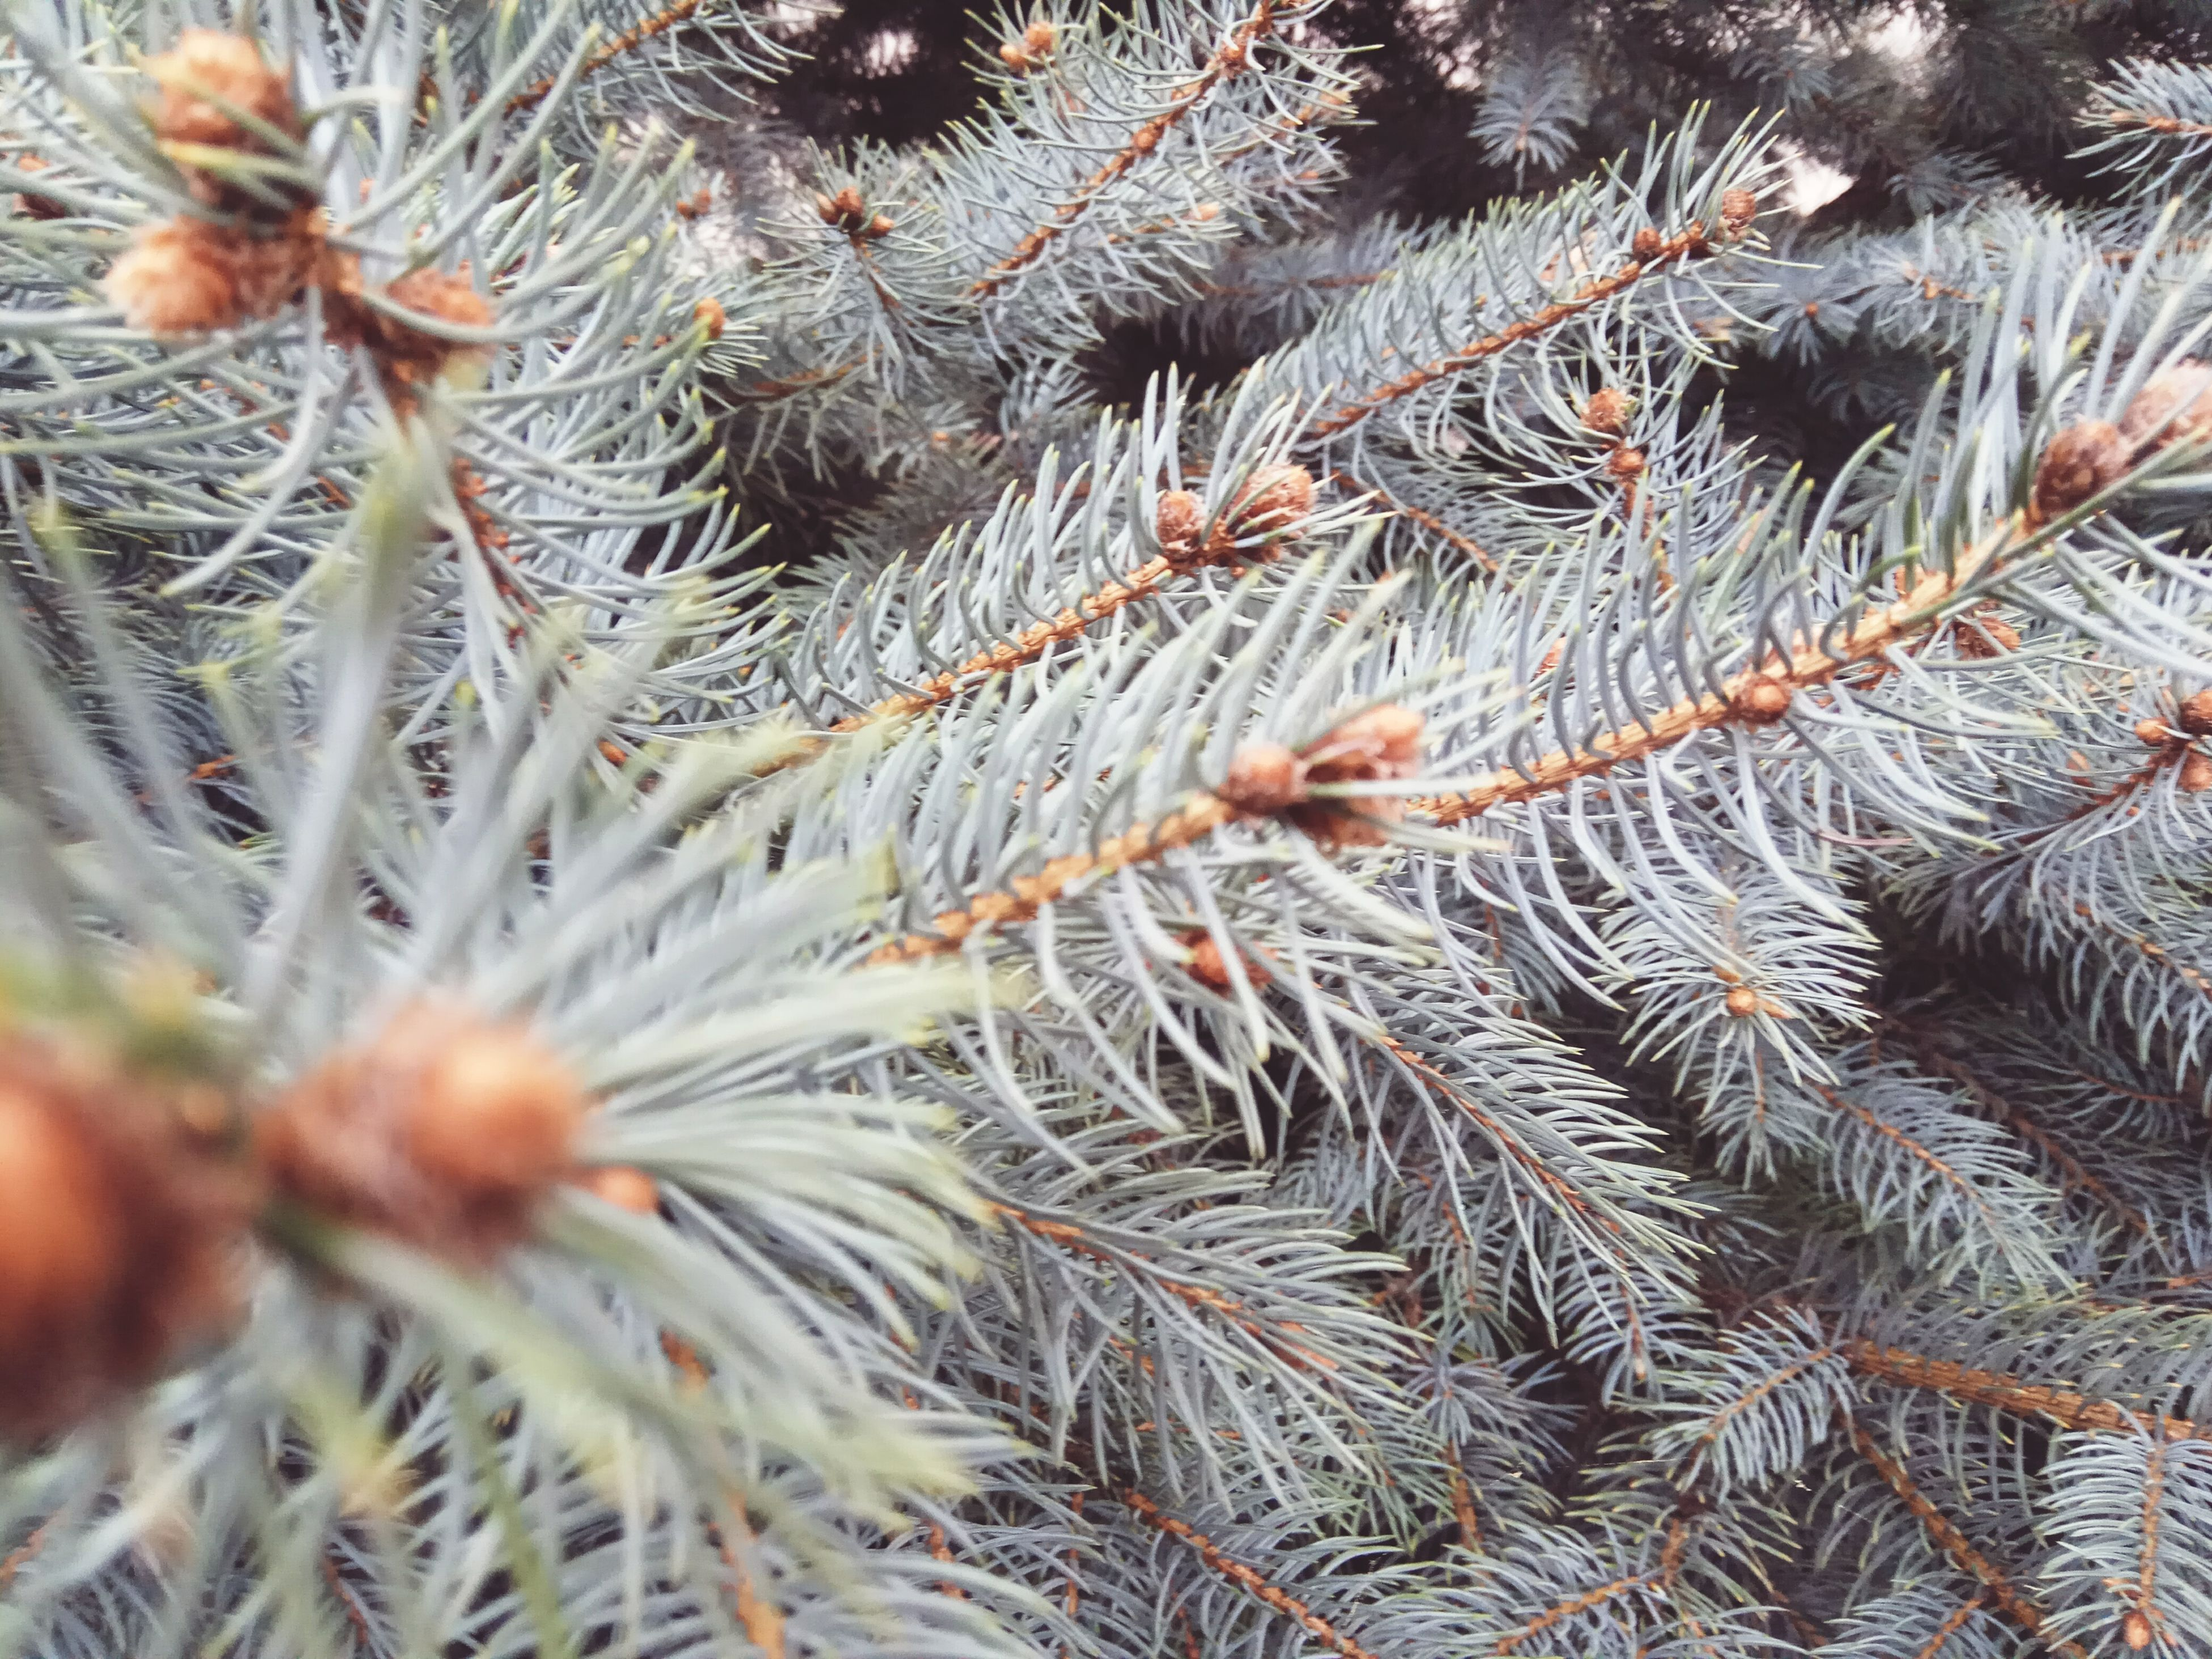 nature, growth, close-up, pine tree, tree, beauty in nature, no people, branch, needle - plant part, day, plant, outdoors, full frame, tranquility, coniferous tree, backgrounds